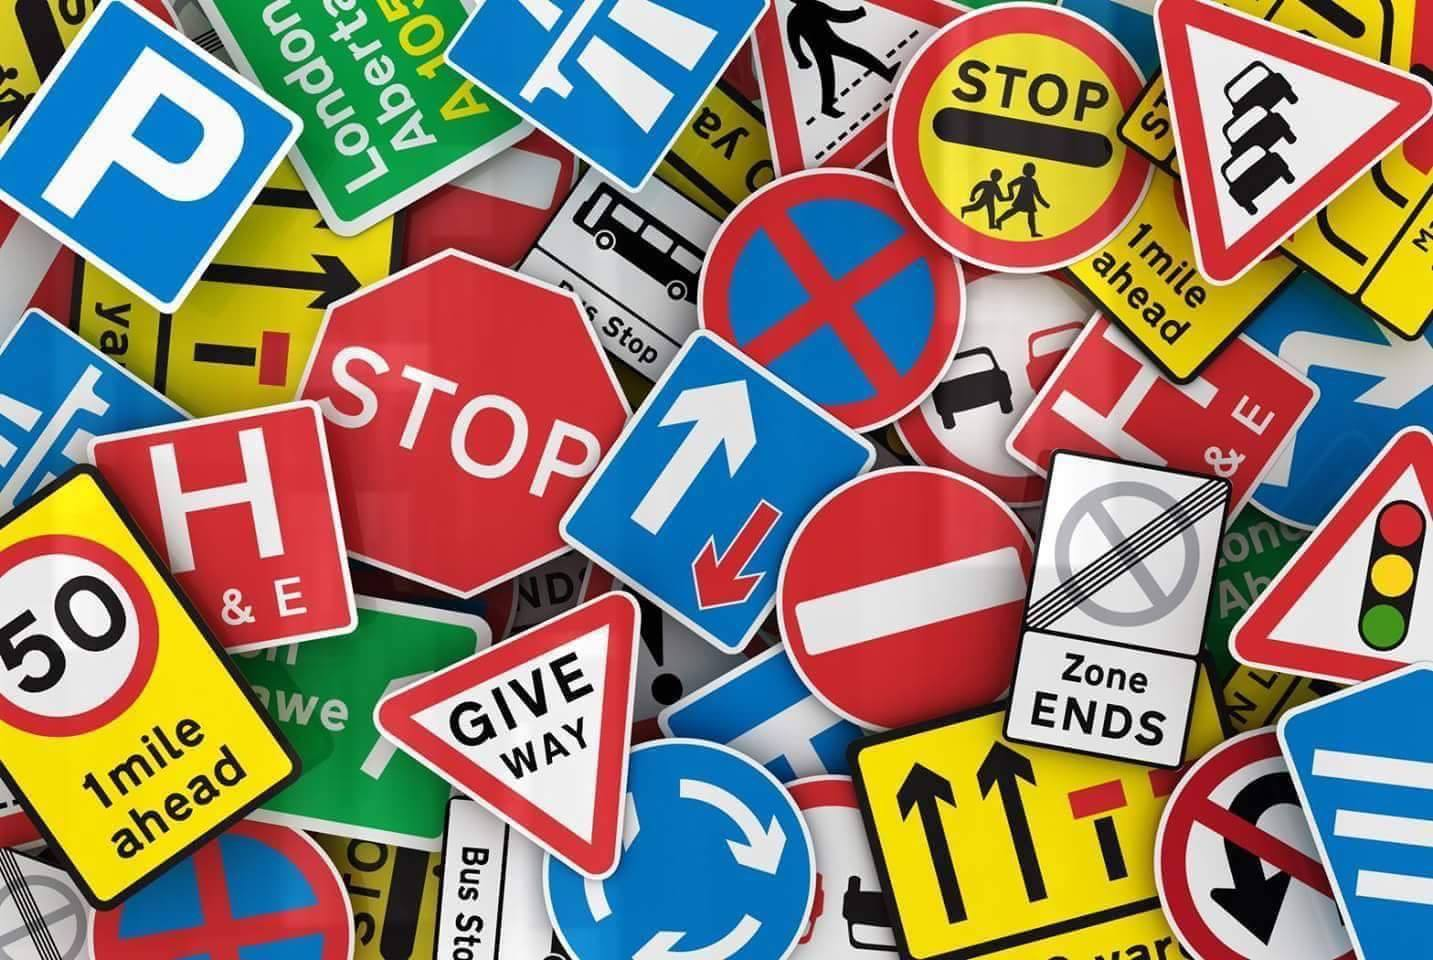 Most Difficult Road Signs